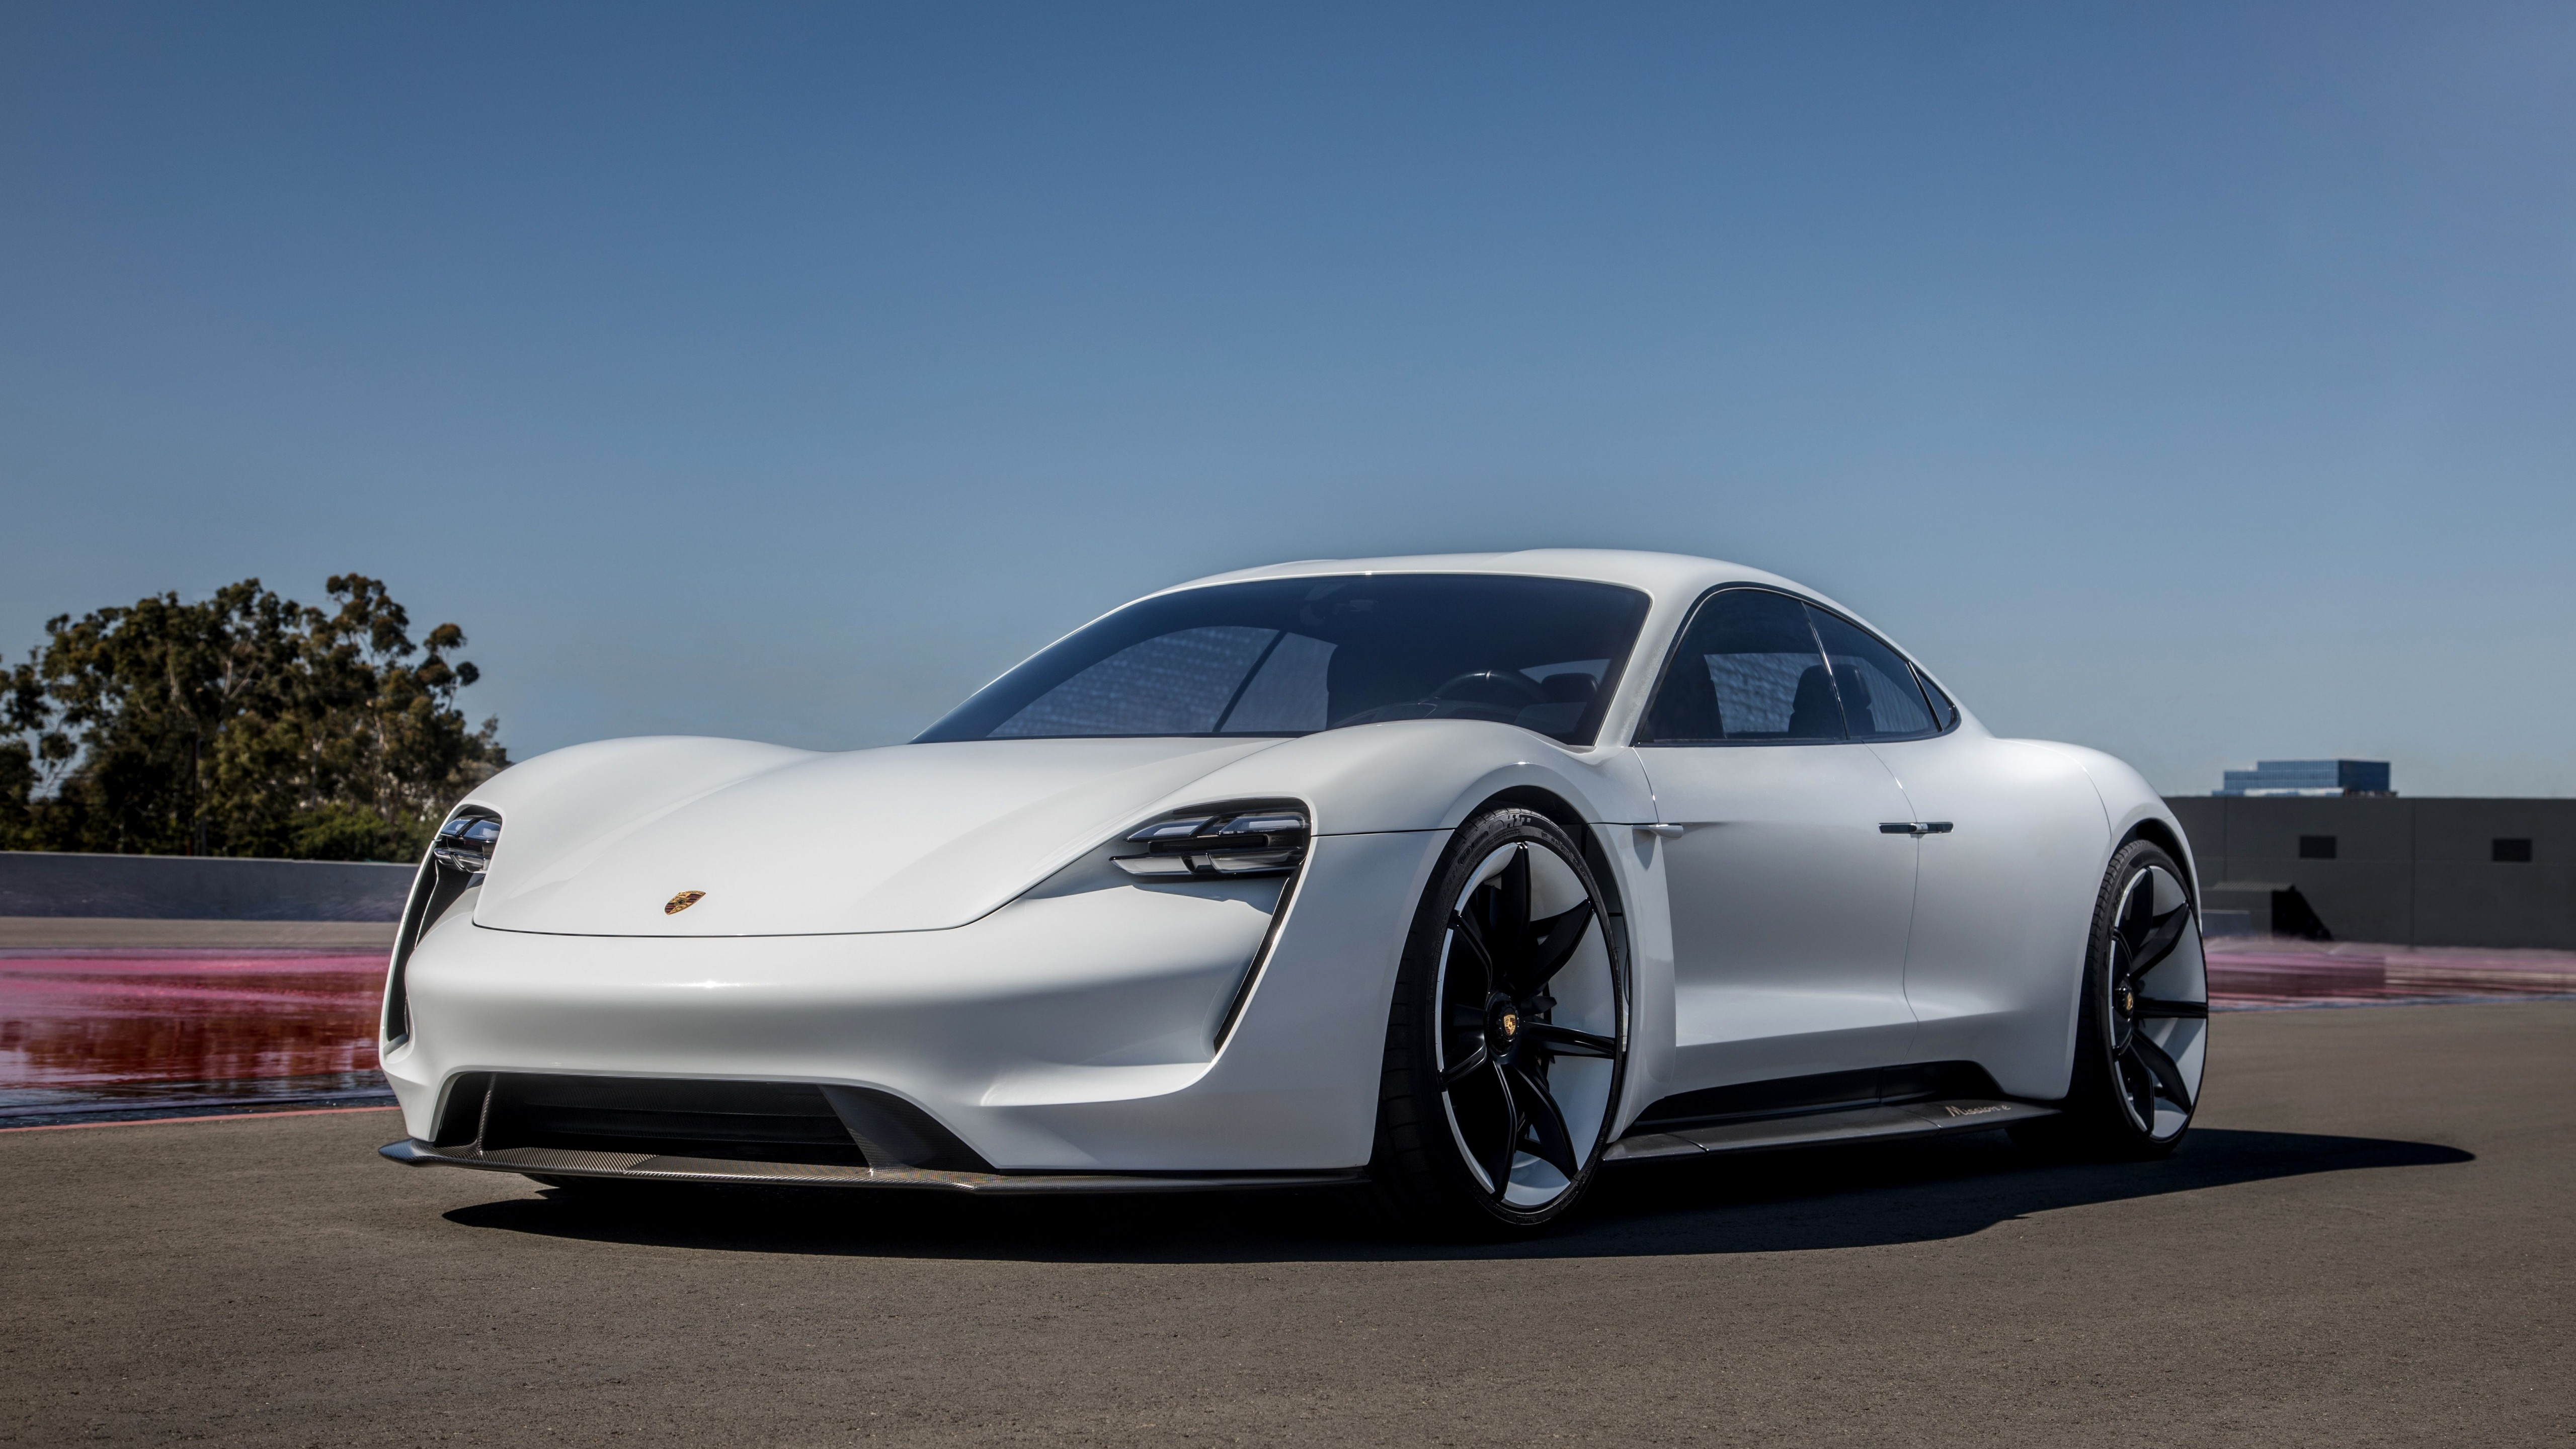 Wallpaper Porsche Taycan Electric Car supercar 2020 Cars 4K 5120x2880